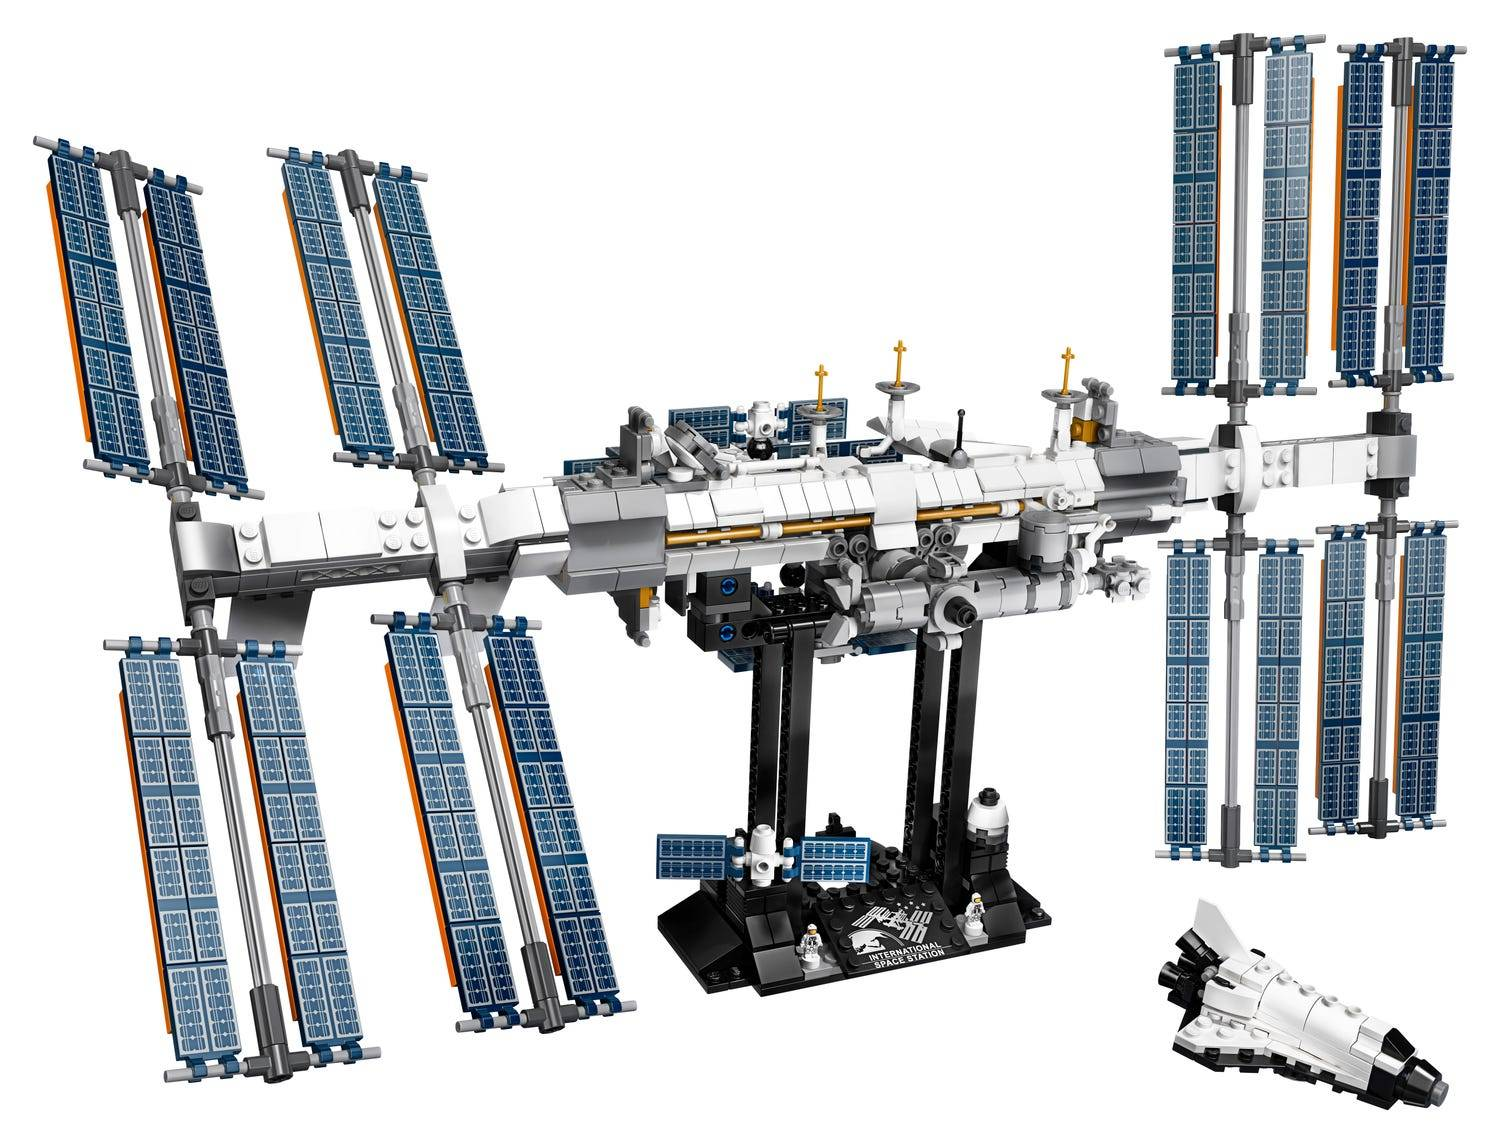 LEGO 21321 iss